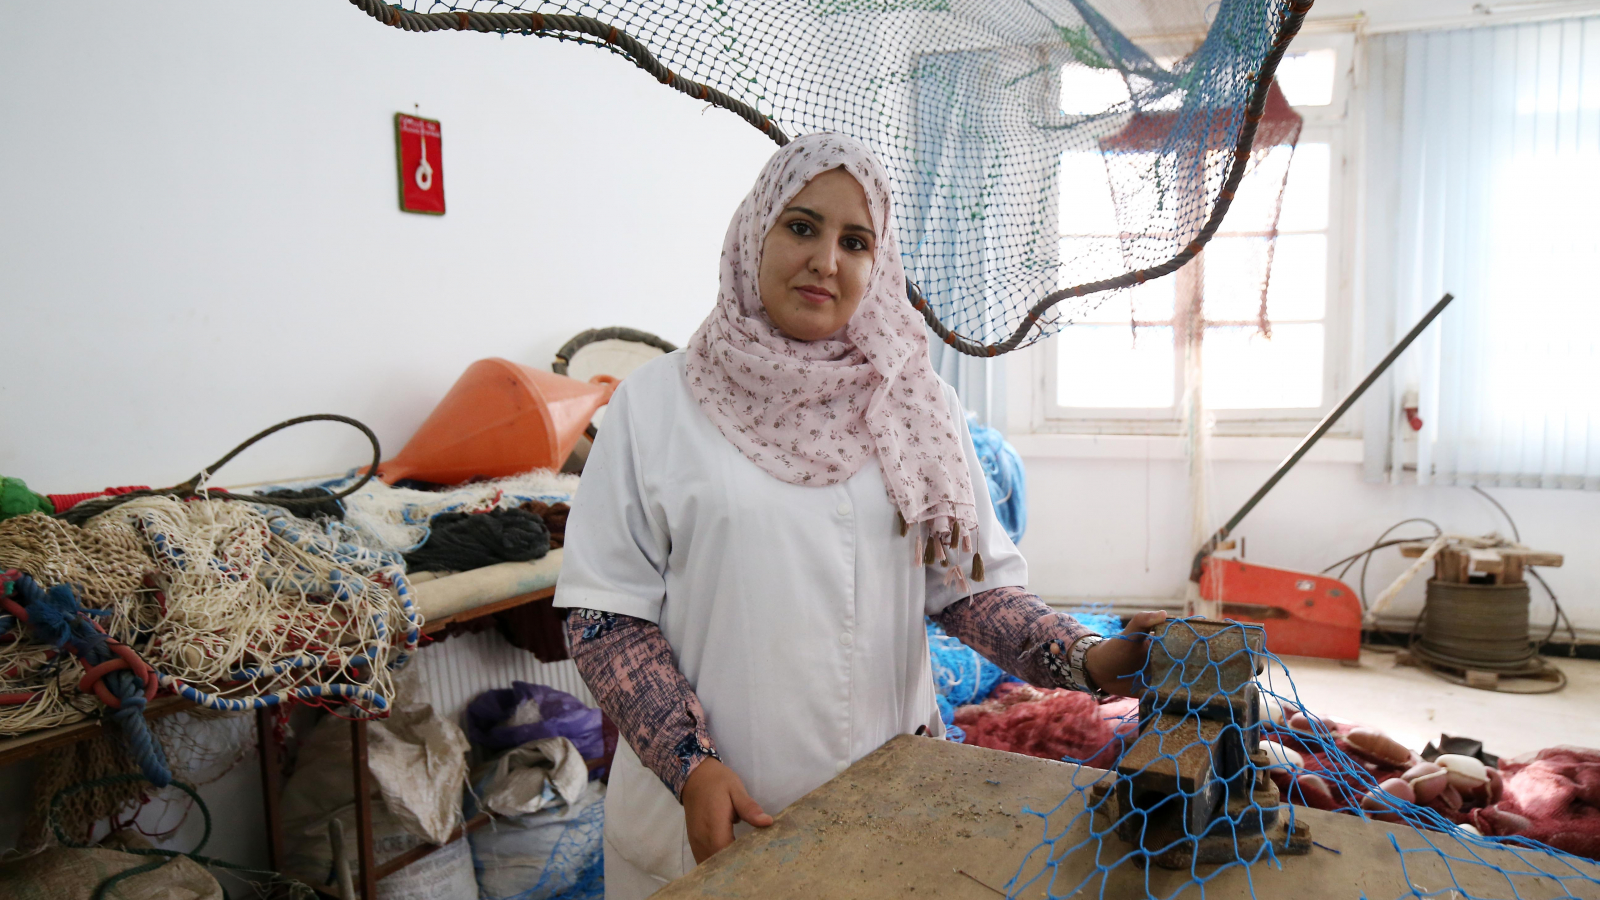 Bouchra Salah, trainer at Cherchell Fisheries and Aquaculture Technical Training School